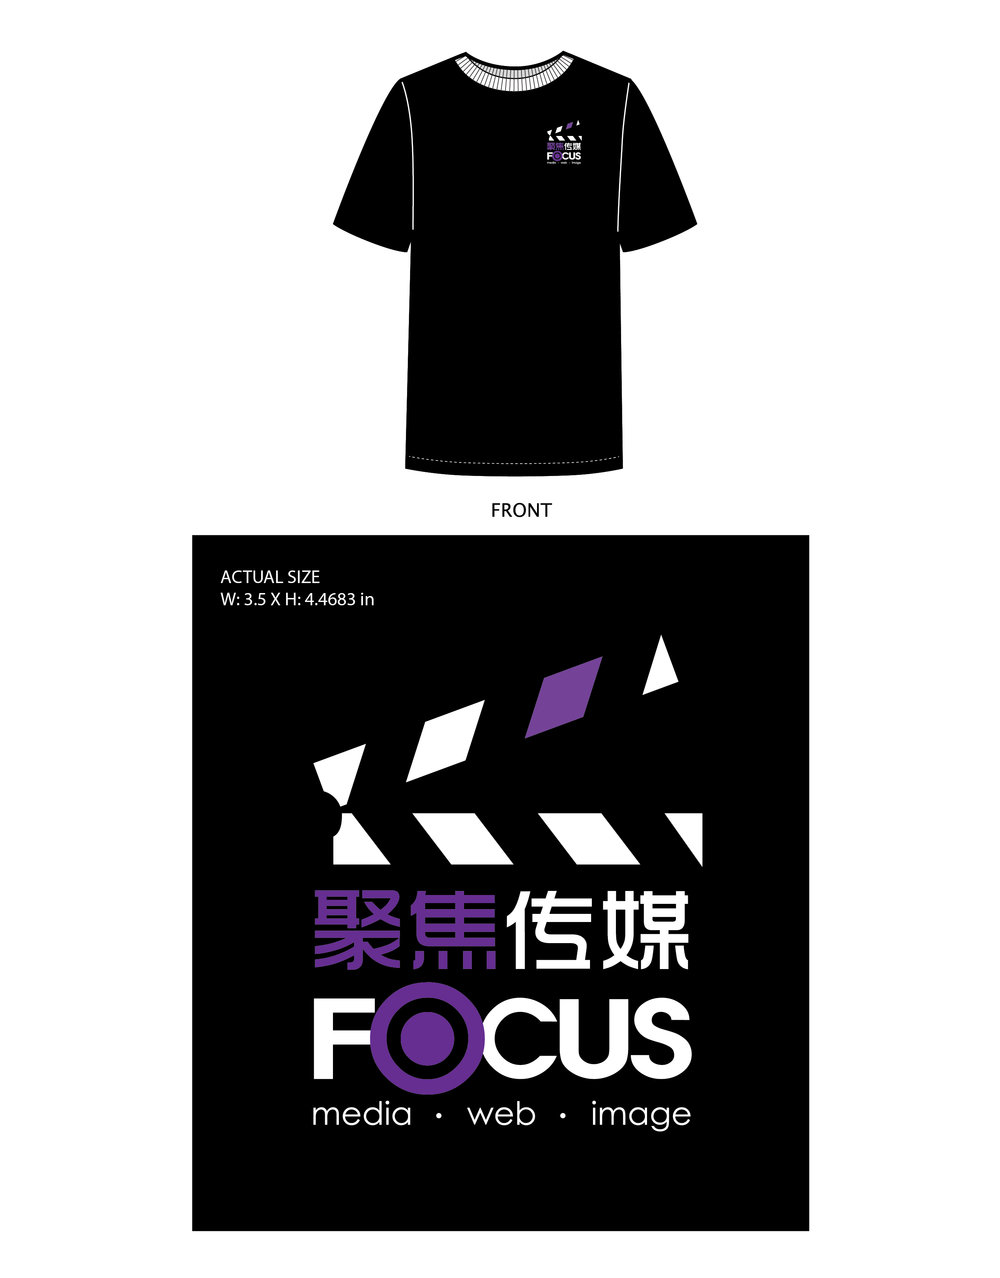 Focus_Media_Film_Crew_TShirt_Design_FRONT-01.jpg